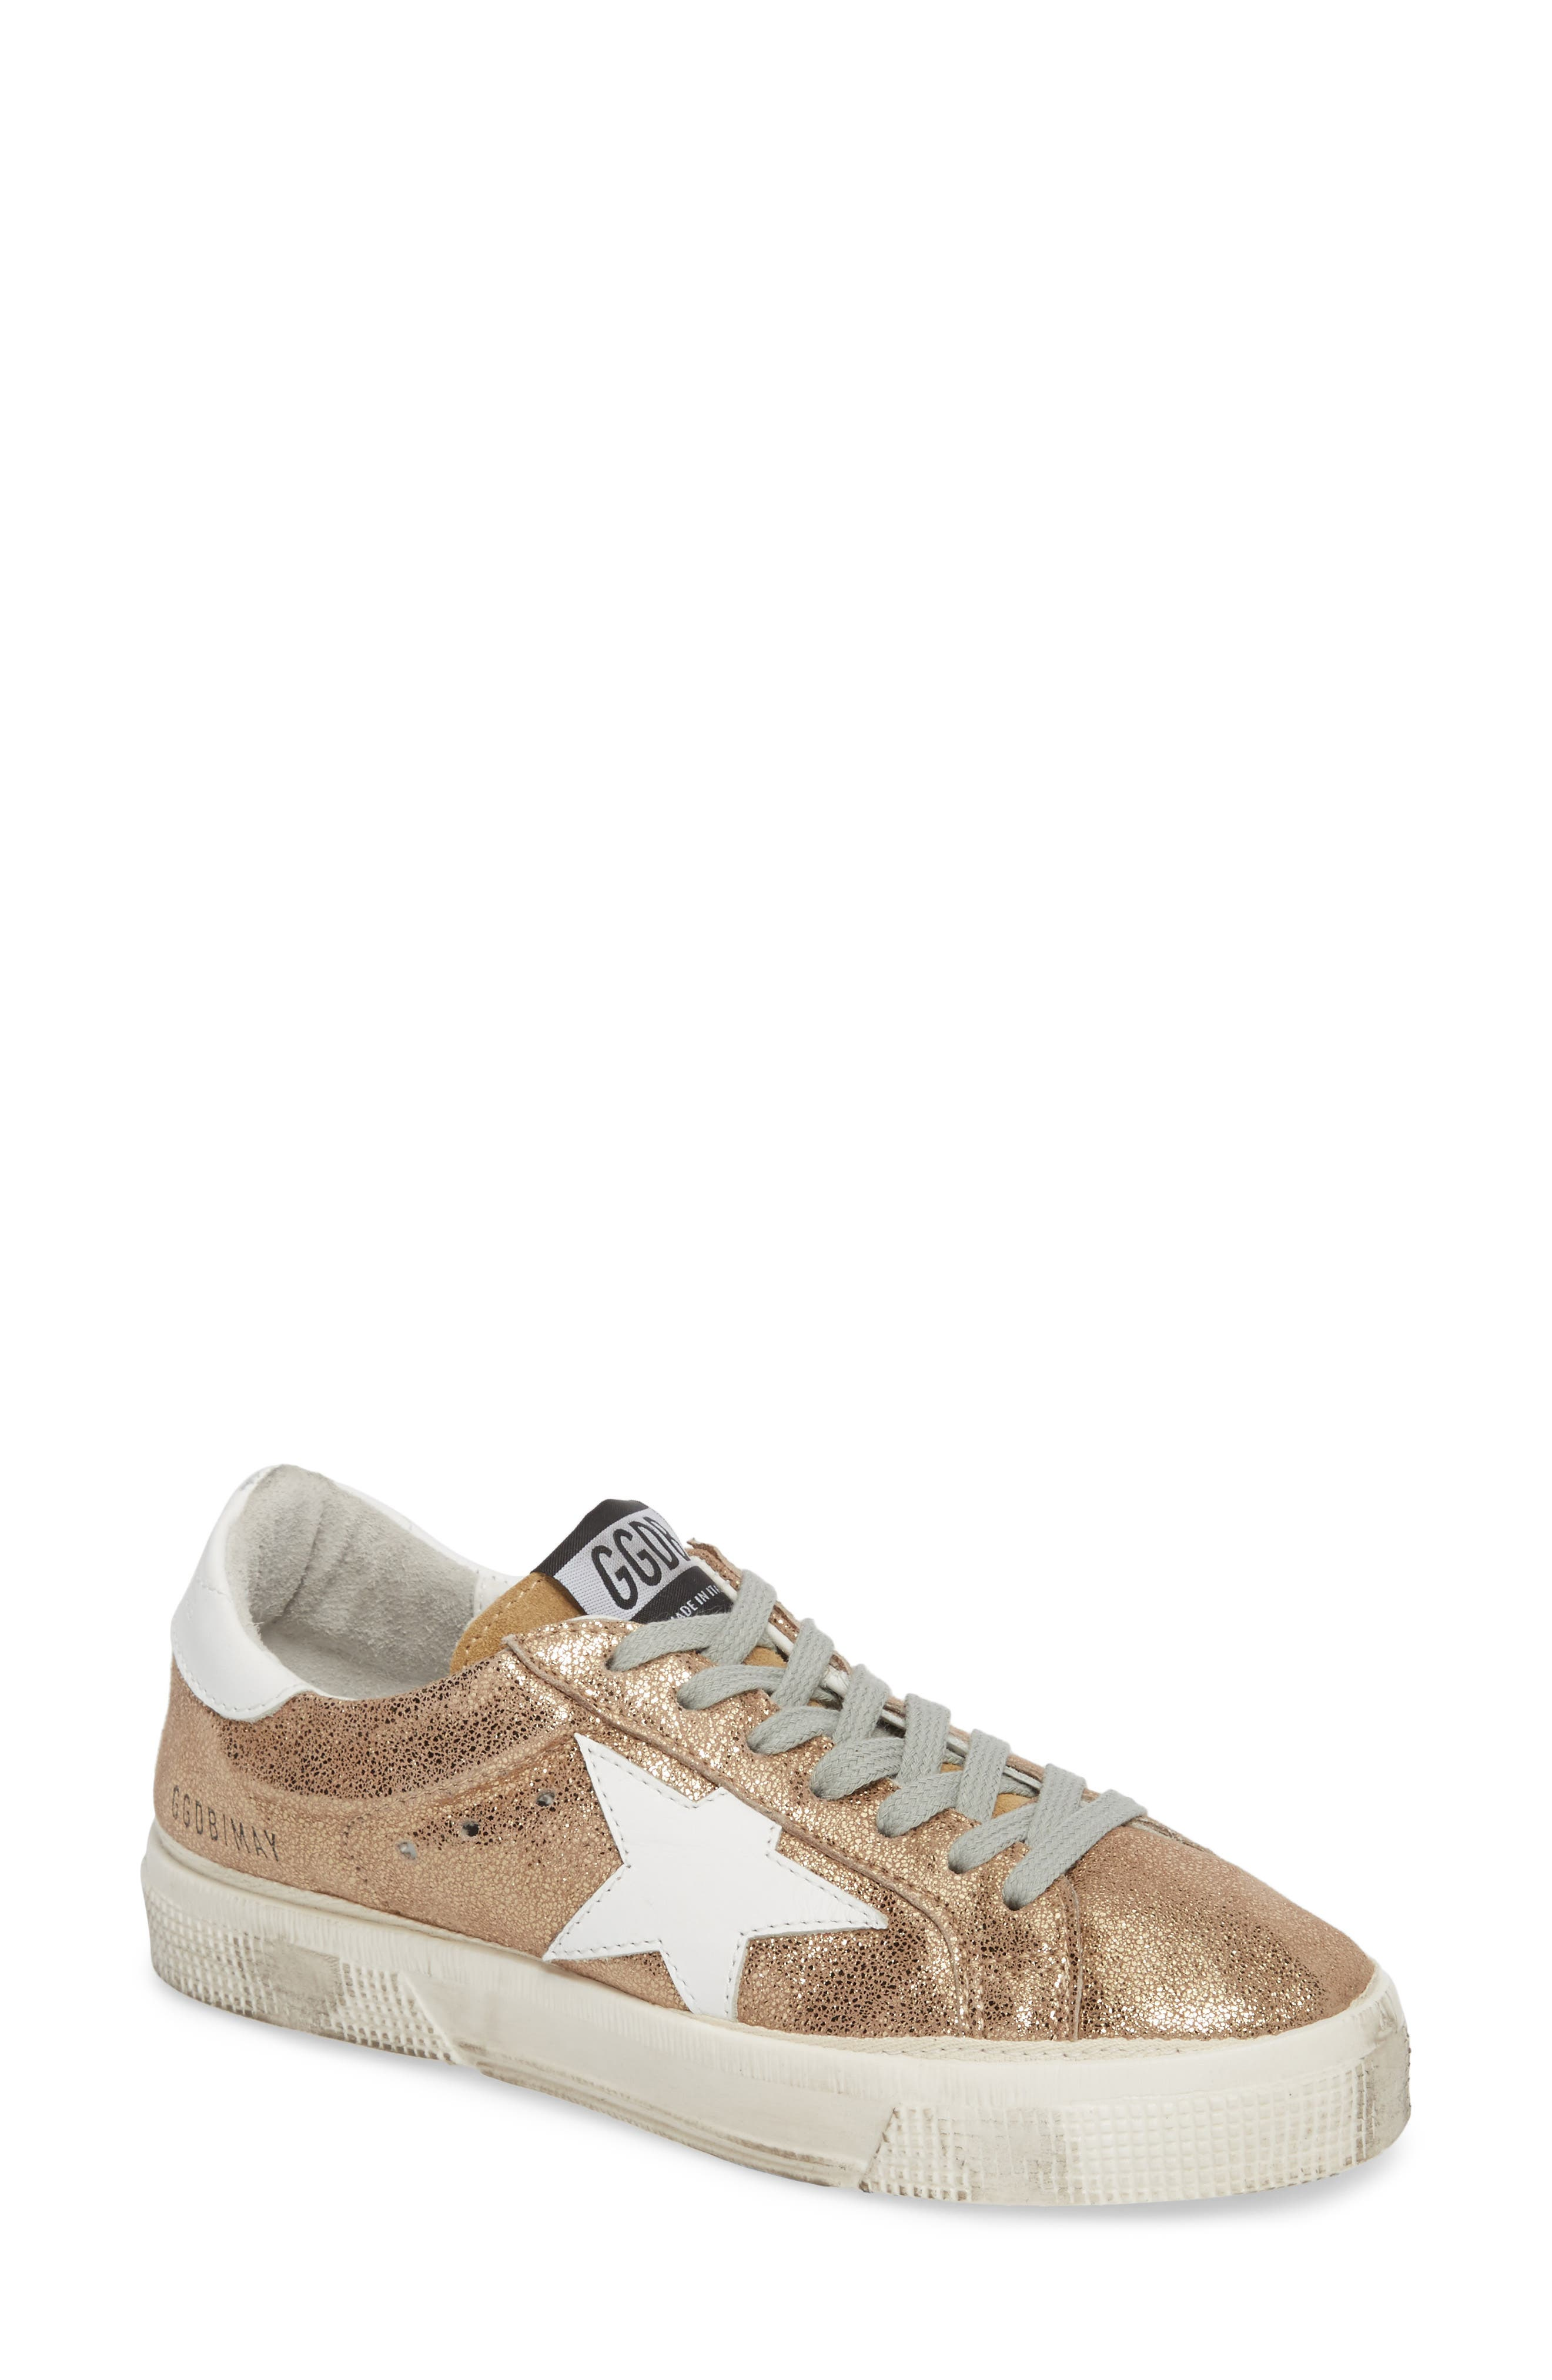 May Metallic Low Top Sneaker,                             Main thumbnail 1, color,                             Gold/ White